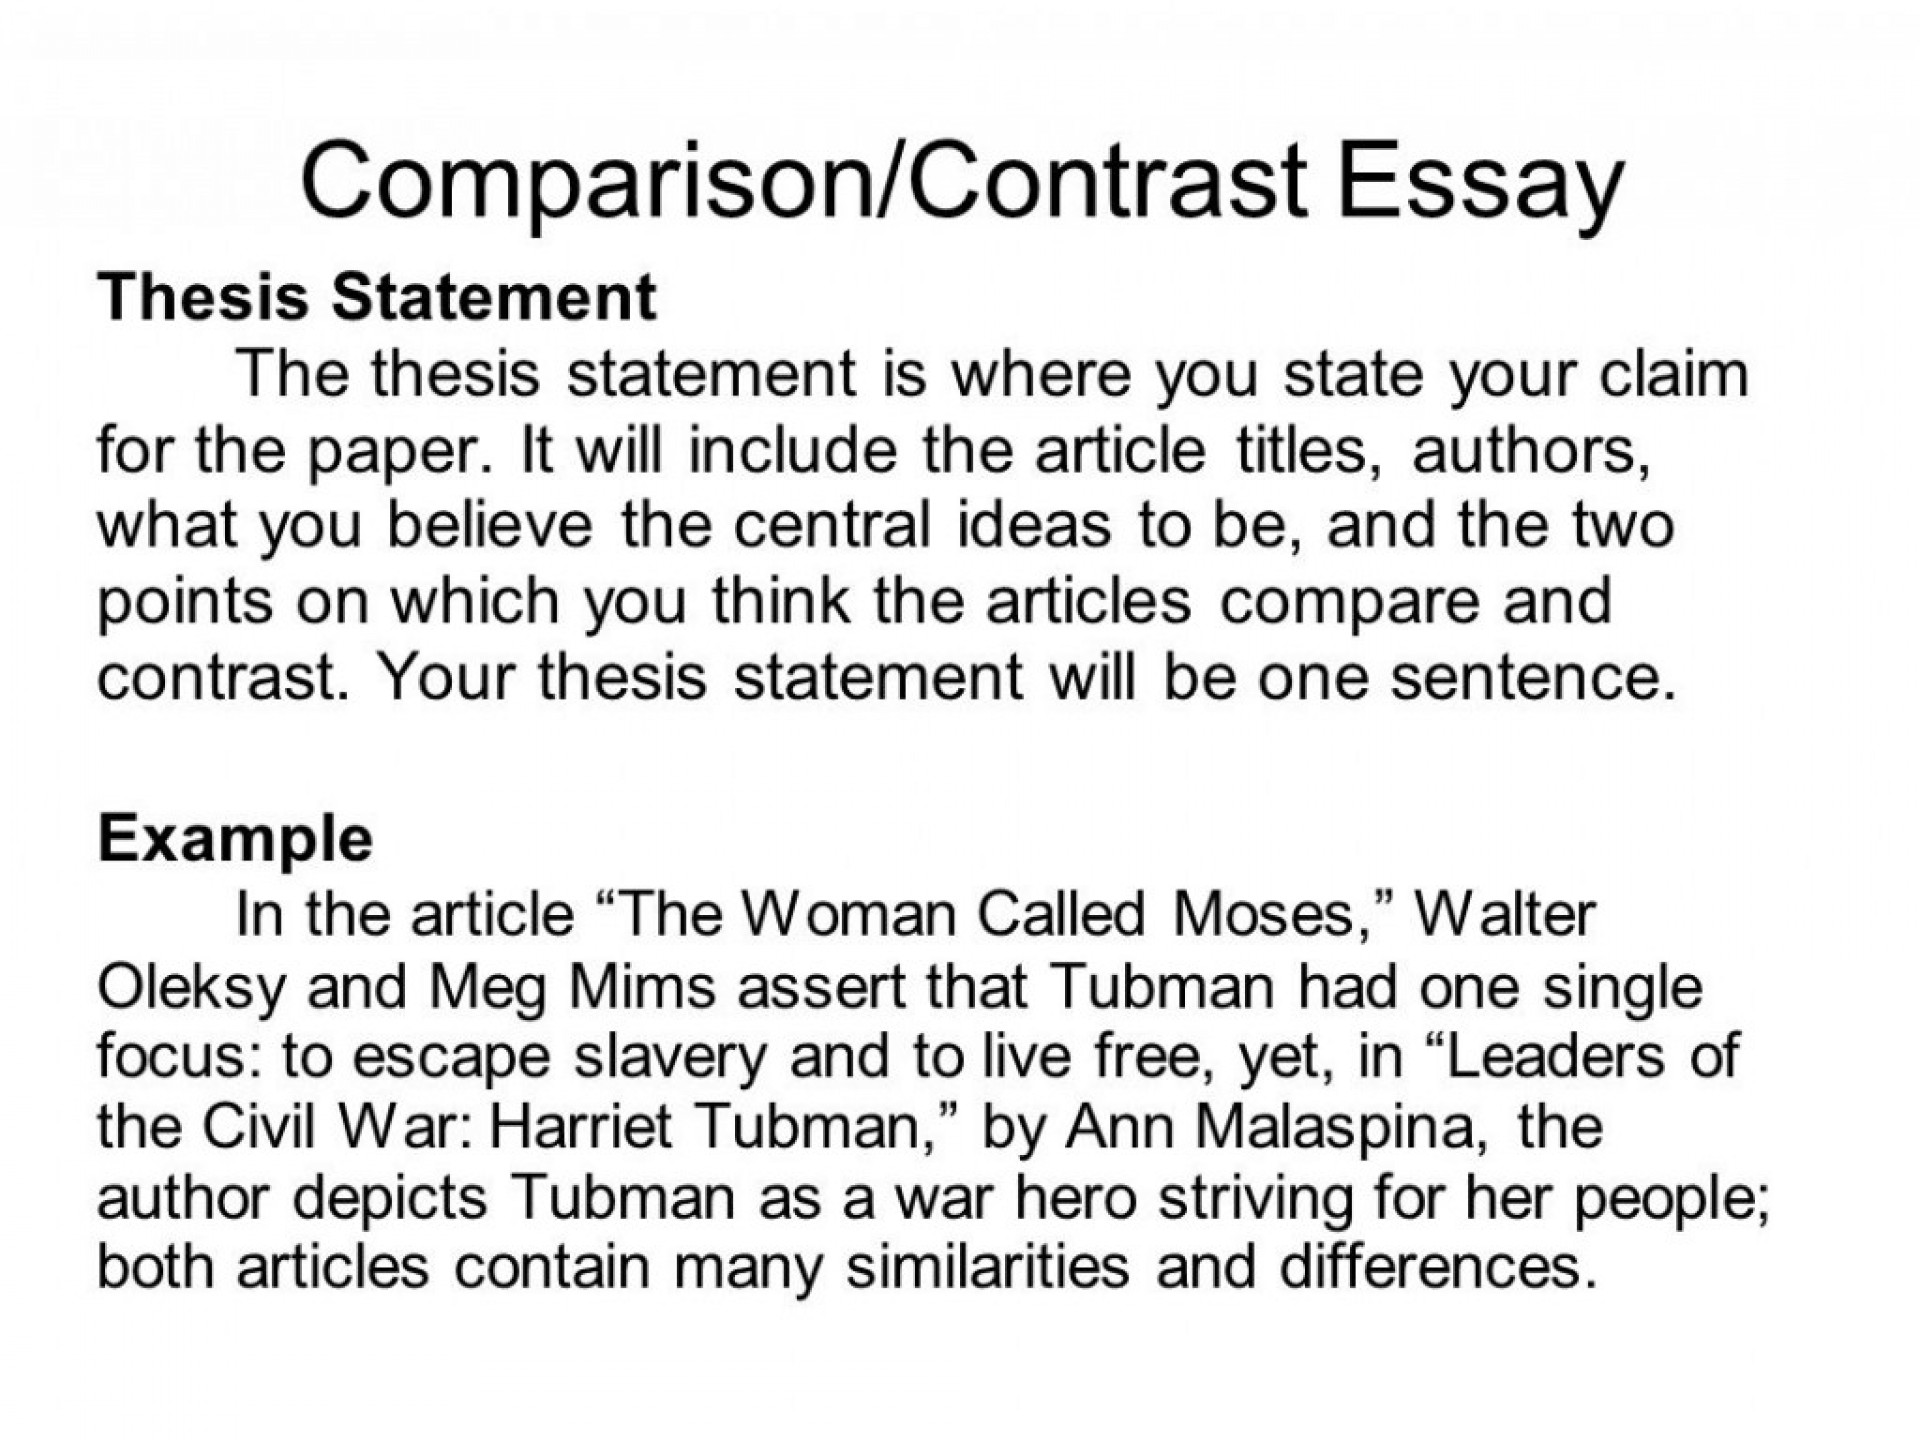 016 Write My Sample Comparative Essay Introduction Writing Portfolio With Mr Butner Due Date Compare Contrast How To Conclude And Fantastic A Start Comparison Begin 1920